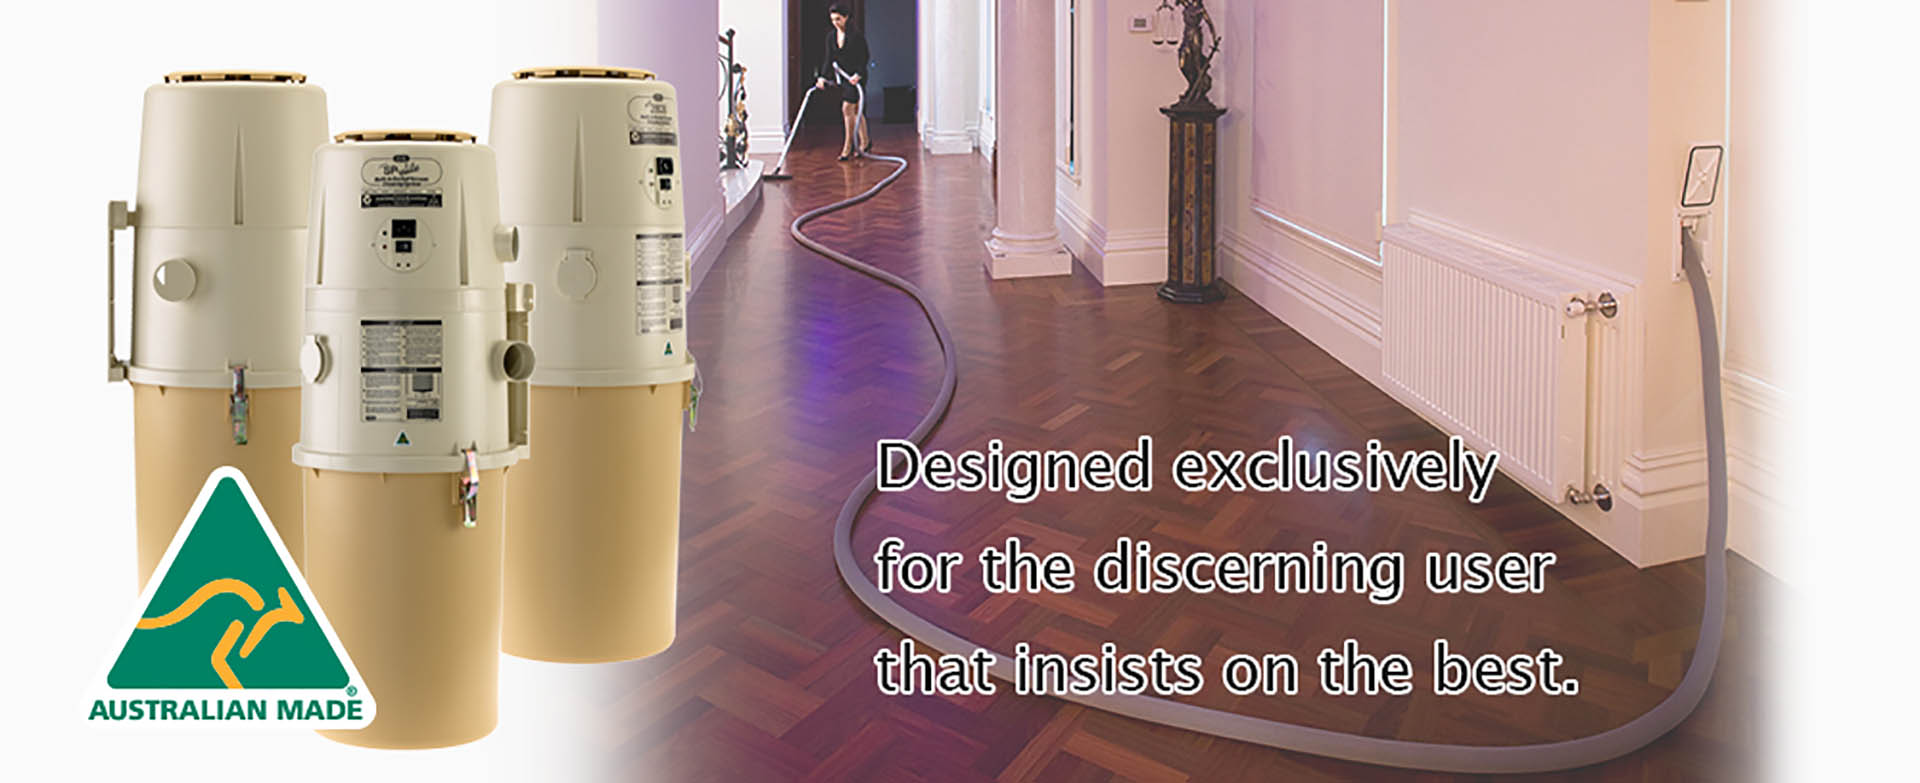 Ducted Vacuum Systems Perth